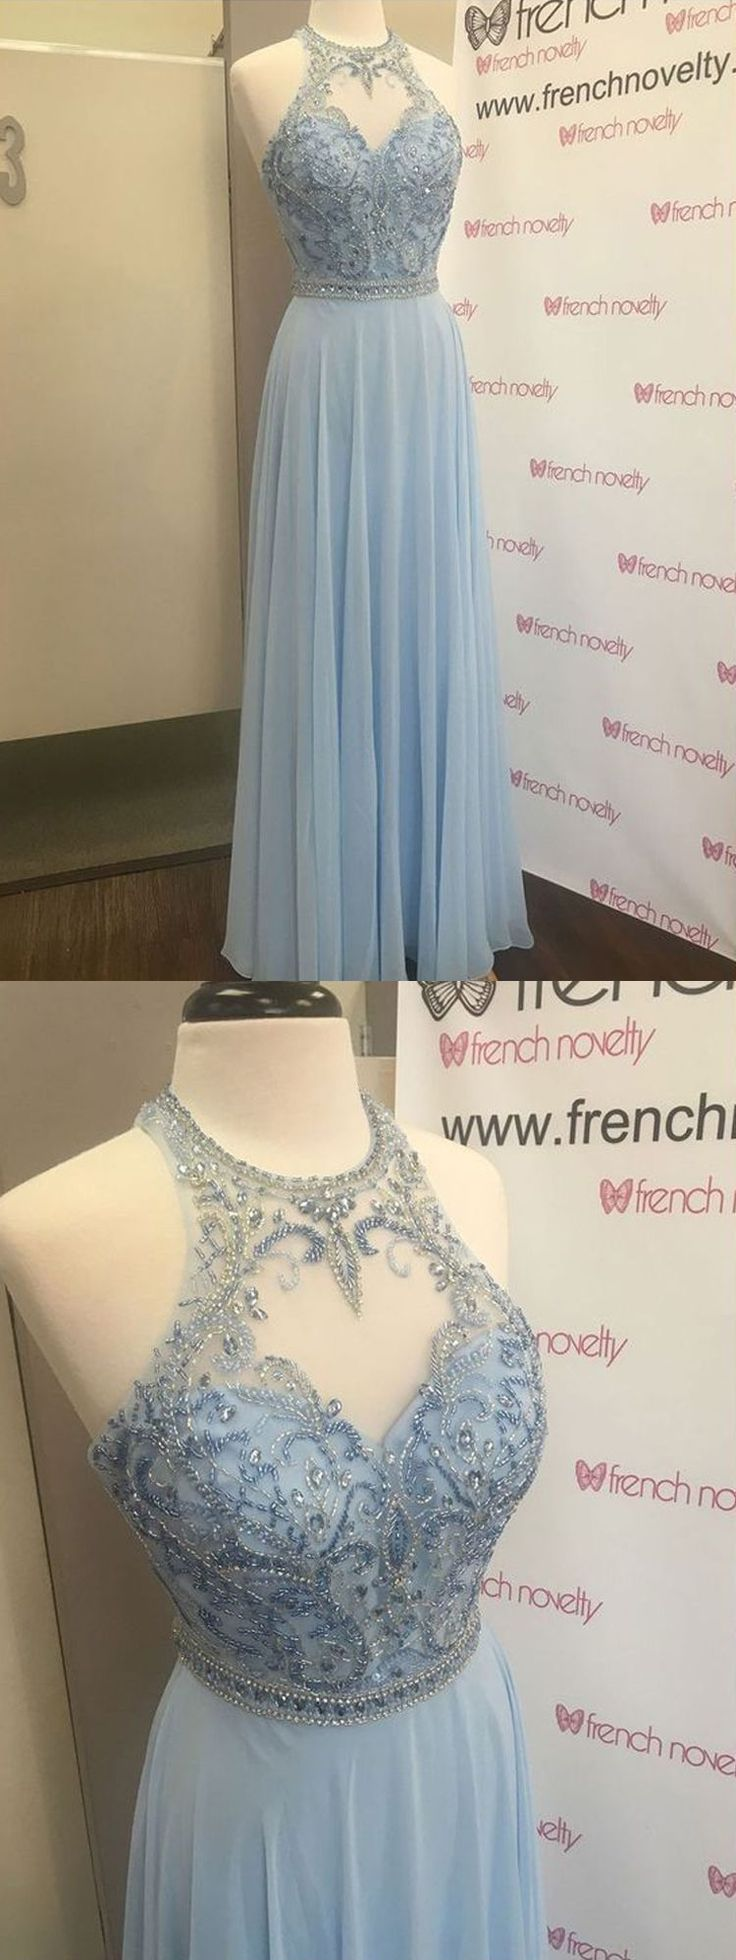 Incredibly Light Blue Beaded Halter Prom Dress,Chiffon Long Prom Dress,Sky Blue Evening Dre…